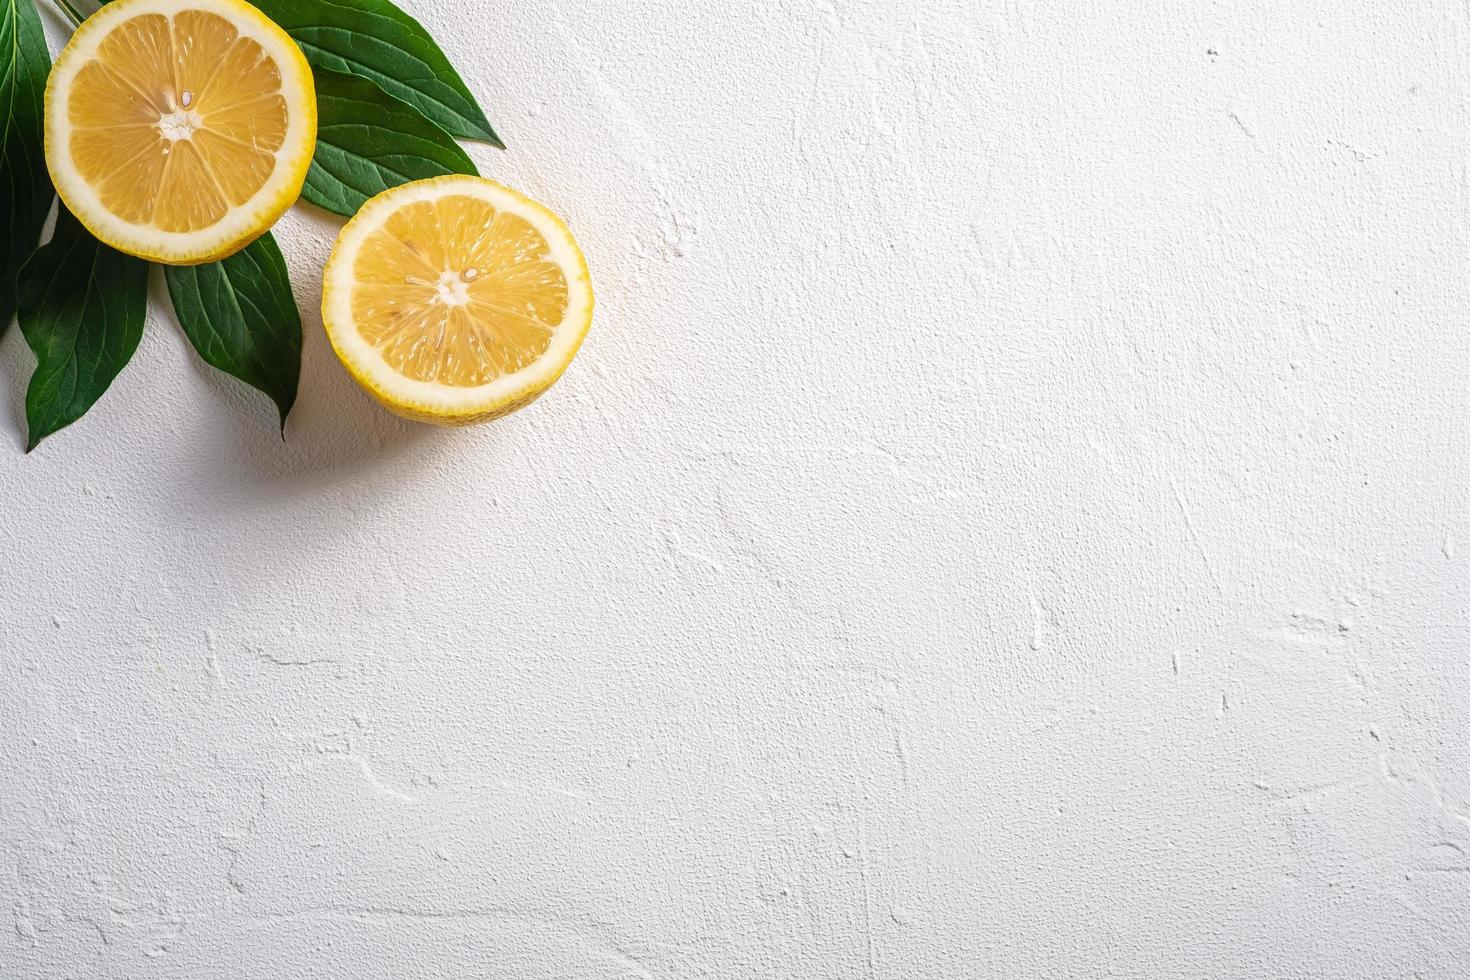 Two lemon slices with green leaves on white concrete background photo